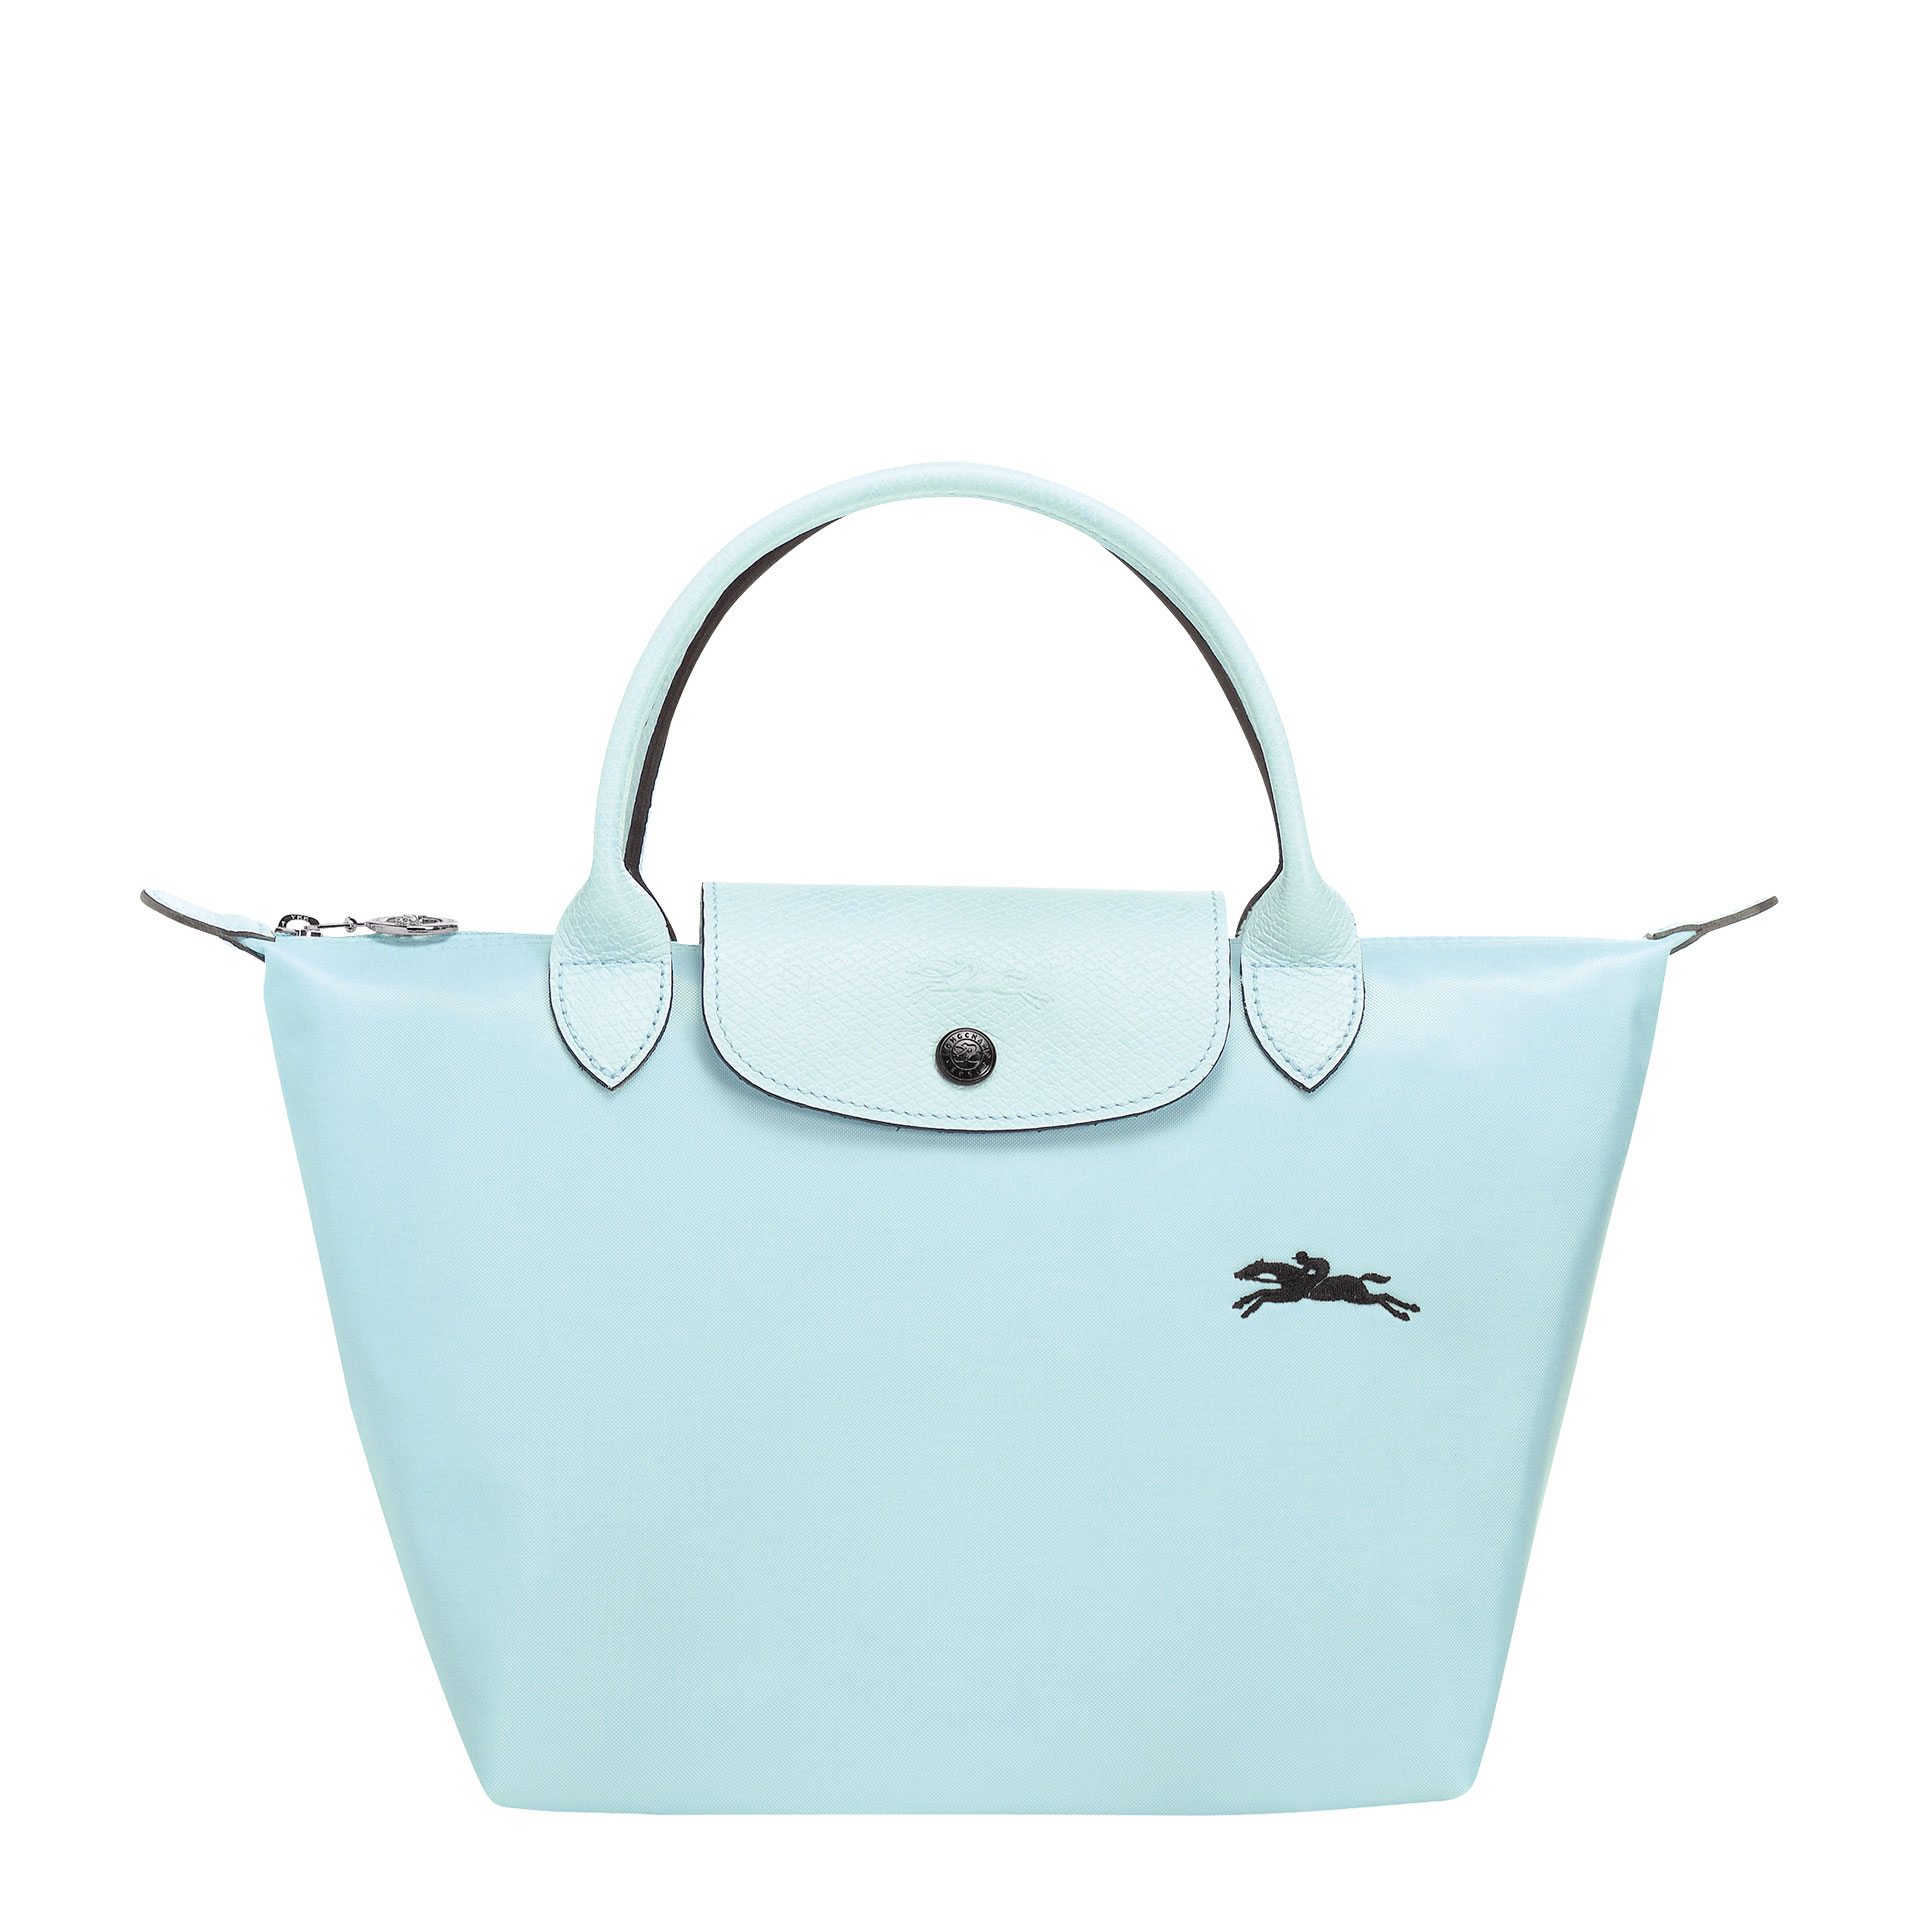 Le Pliage Club Handtasche S